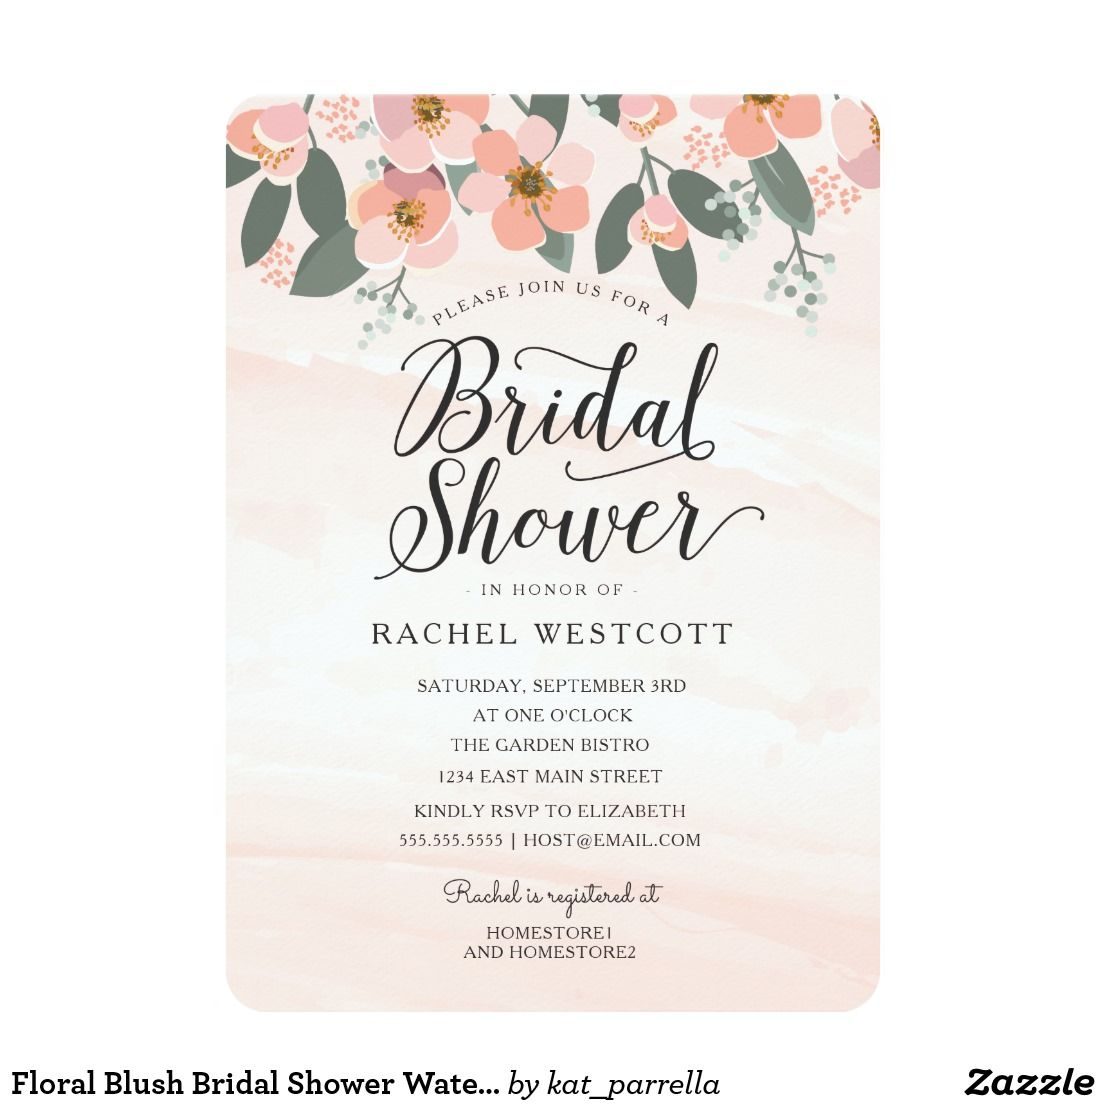 Floral blush bridal shower watercolor pink card engagement and wedding